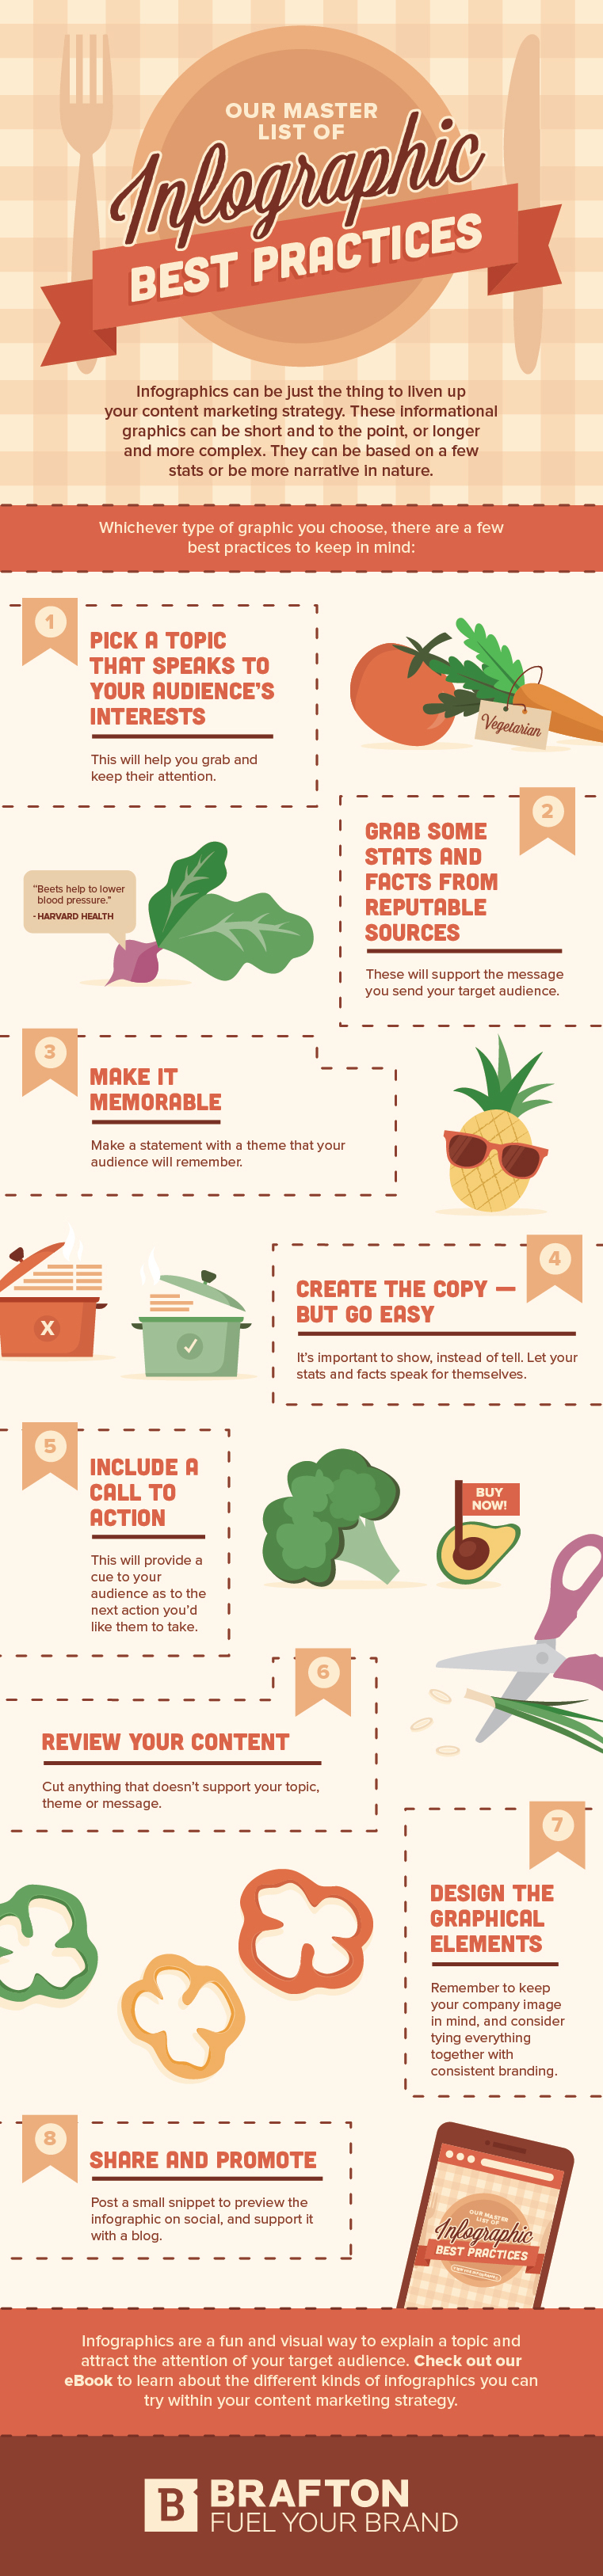 Infographic: Infographic Best Practices